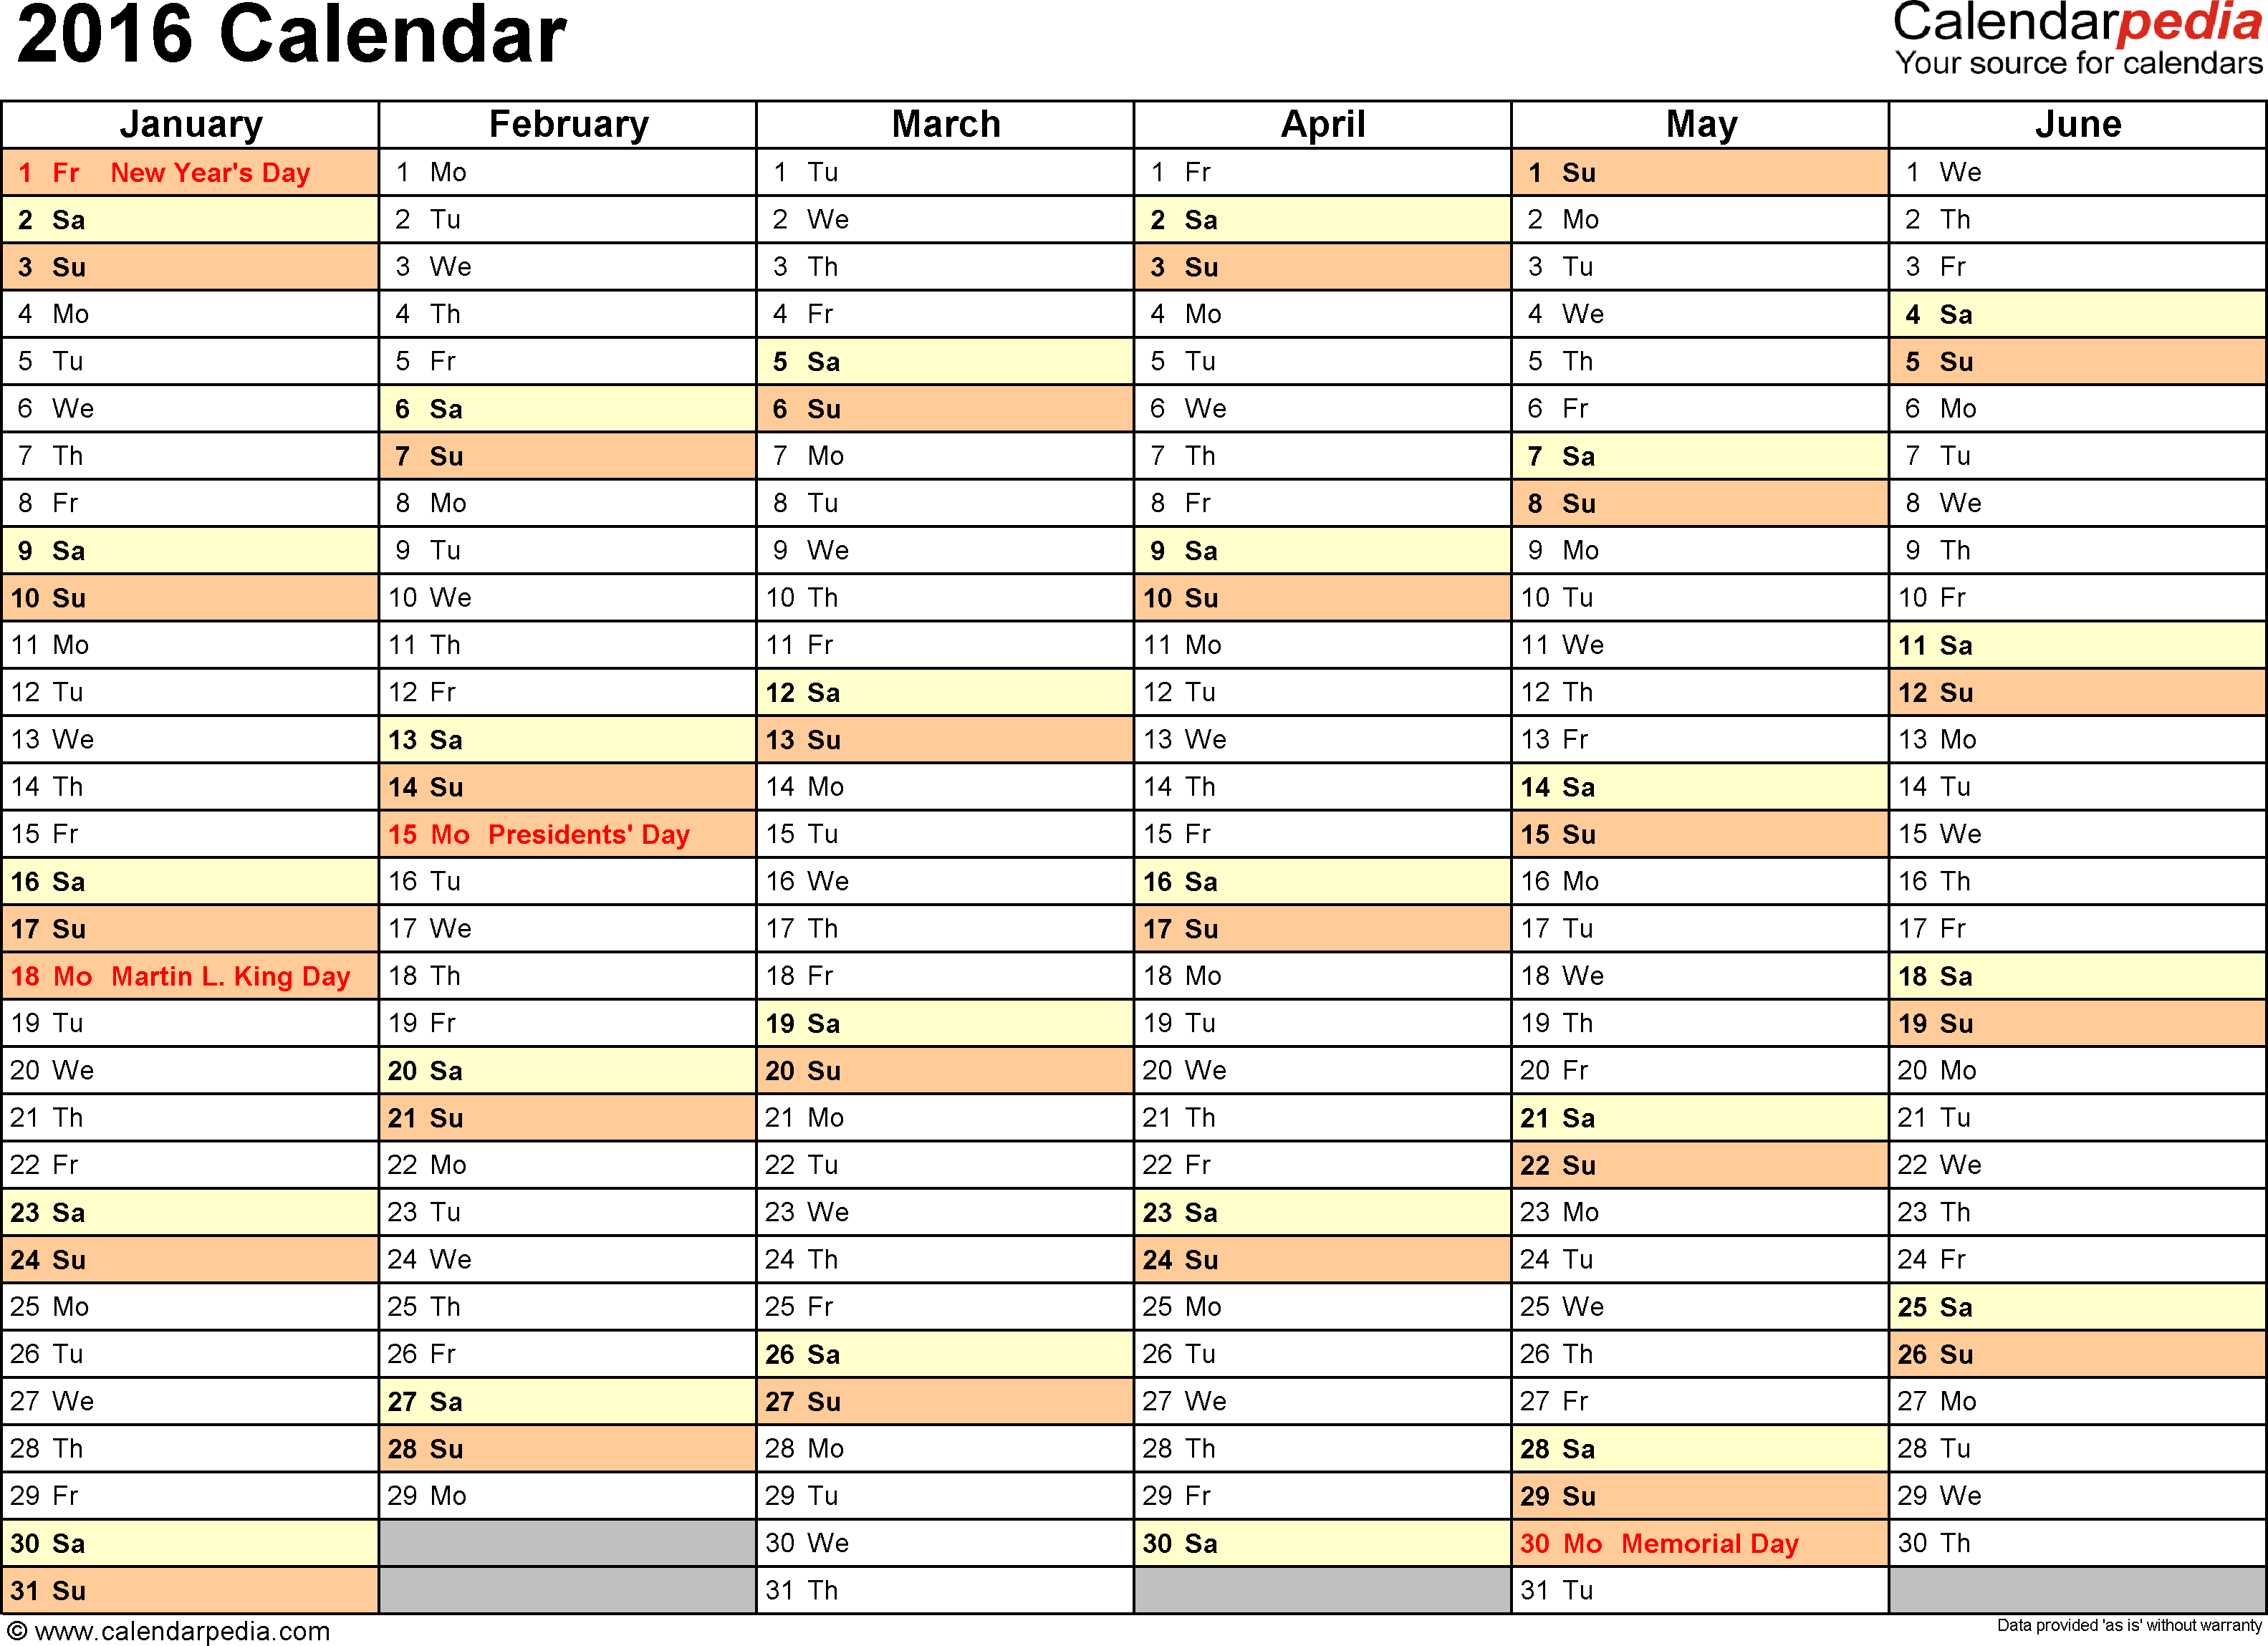 Ediblewildsus  Marvelous  Calendar  Download  Free Printable Excel Templates Xls With Glamorous Template   Calendar For Excel Months Horizontally  Pages Landscape Orientation With Cute Convert Pdf Tables To Excel Also Opening Two Excel Windows In Addition Excel Binary Format And Excel Subtract Date Time As Well As Duration Calculator Excel Additionally Excel Vba File Path From Calendarpediacom With Ediblewildsus  Glamorous  Calendar  Download  Free Printable Excel Templates Xls With Cute Template   Calendar For Excel Months Horizontally  Pages Landscape Orientation And Marvelous Convert Pdf Tables To Excel Also Opening Two Excel Windows In Addition Excel Binary Format From Calendarpediacom